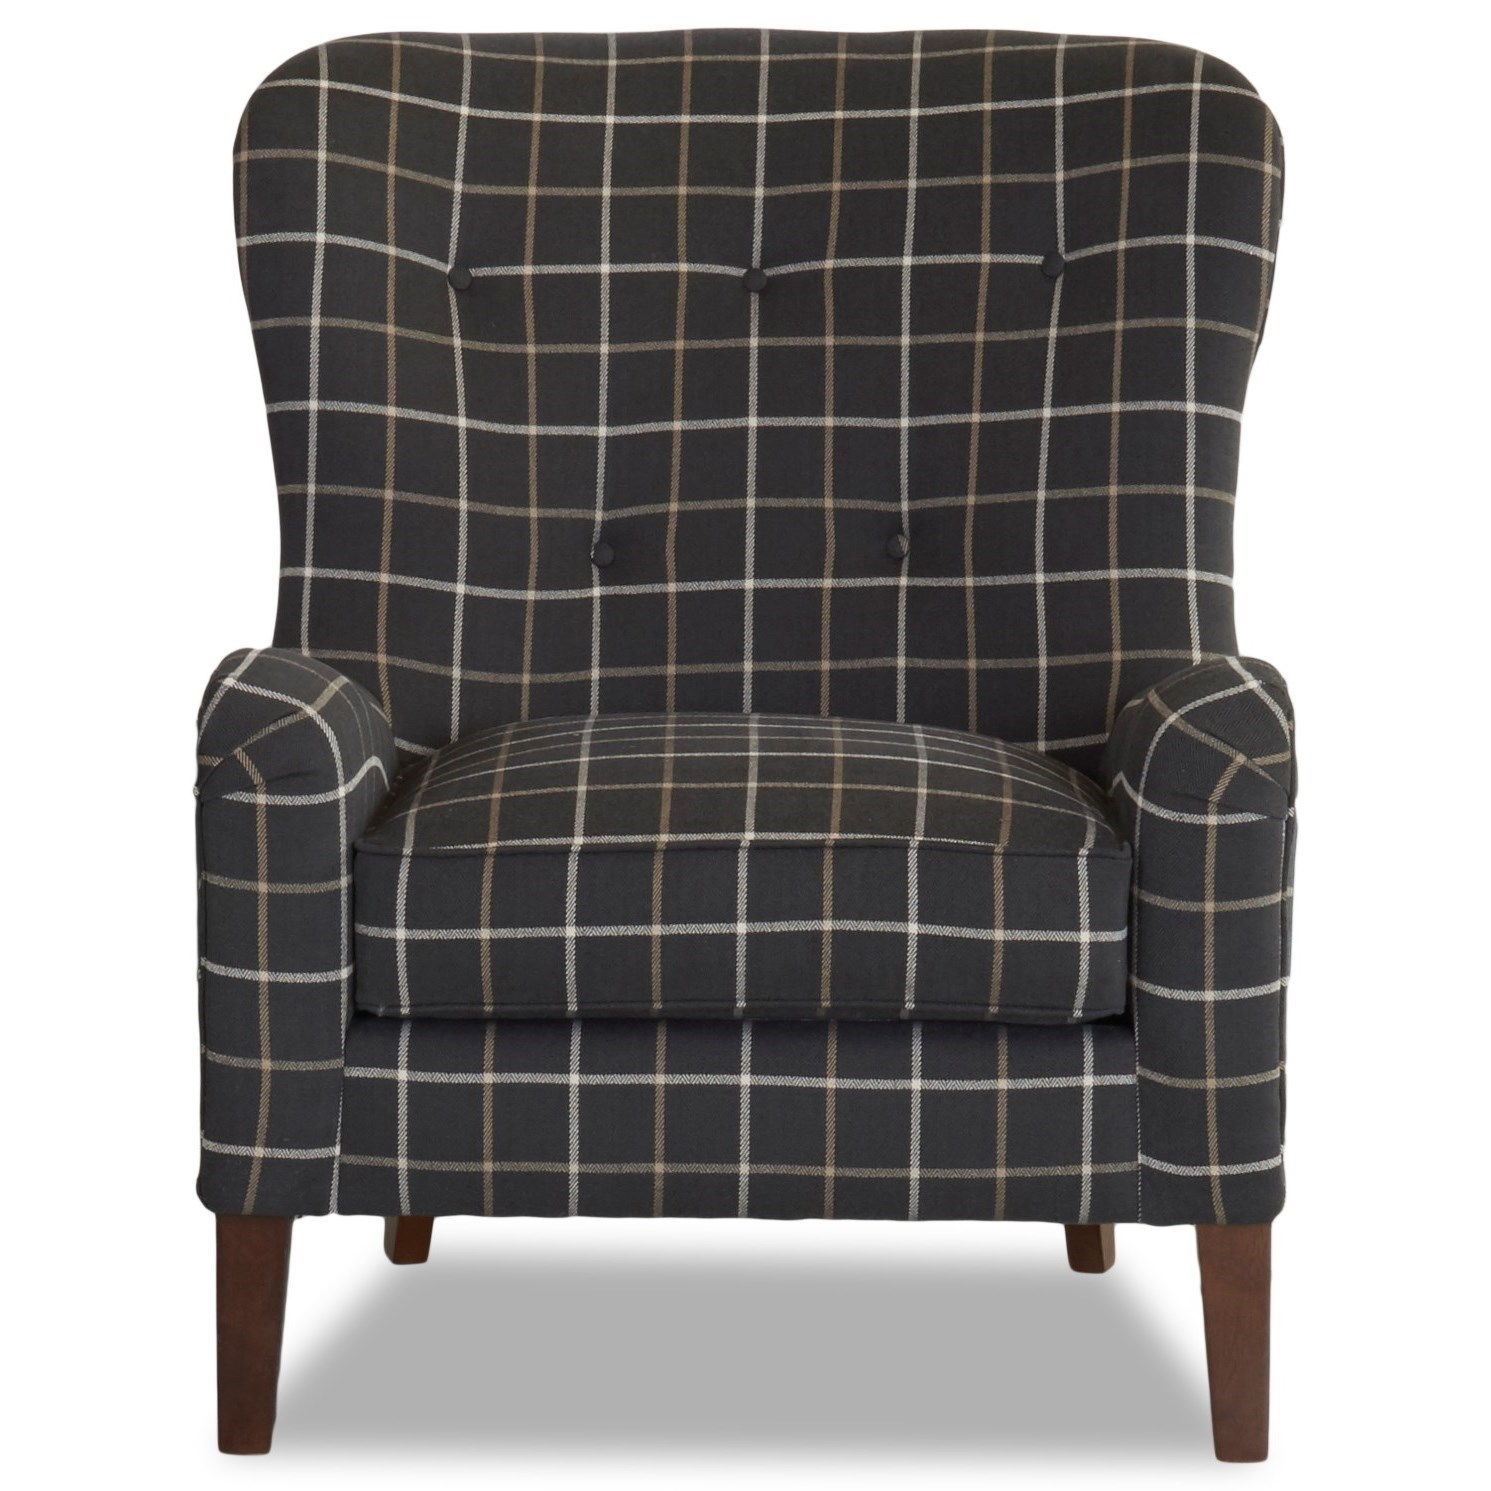 Chairs and Accents Annabel Chair by Klaussner at Northeast Factory Direct